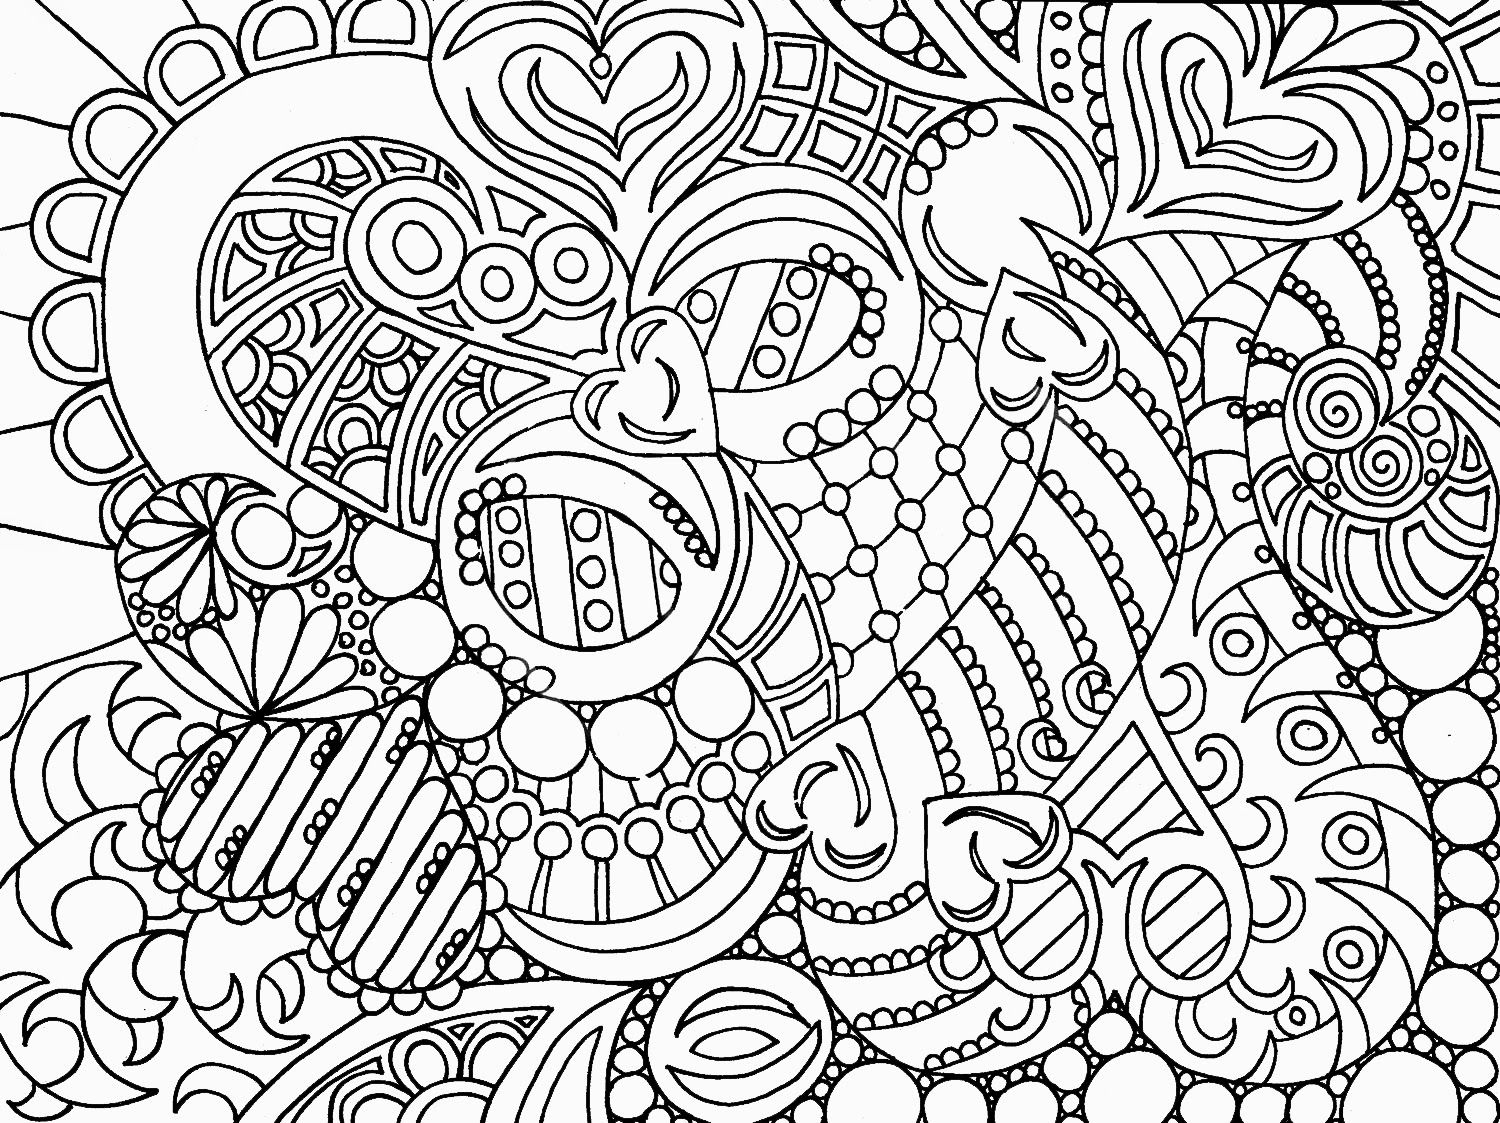 1500x1123 Art Therapy Coloring Pages Coaching Capability Coordination